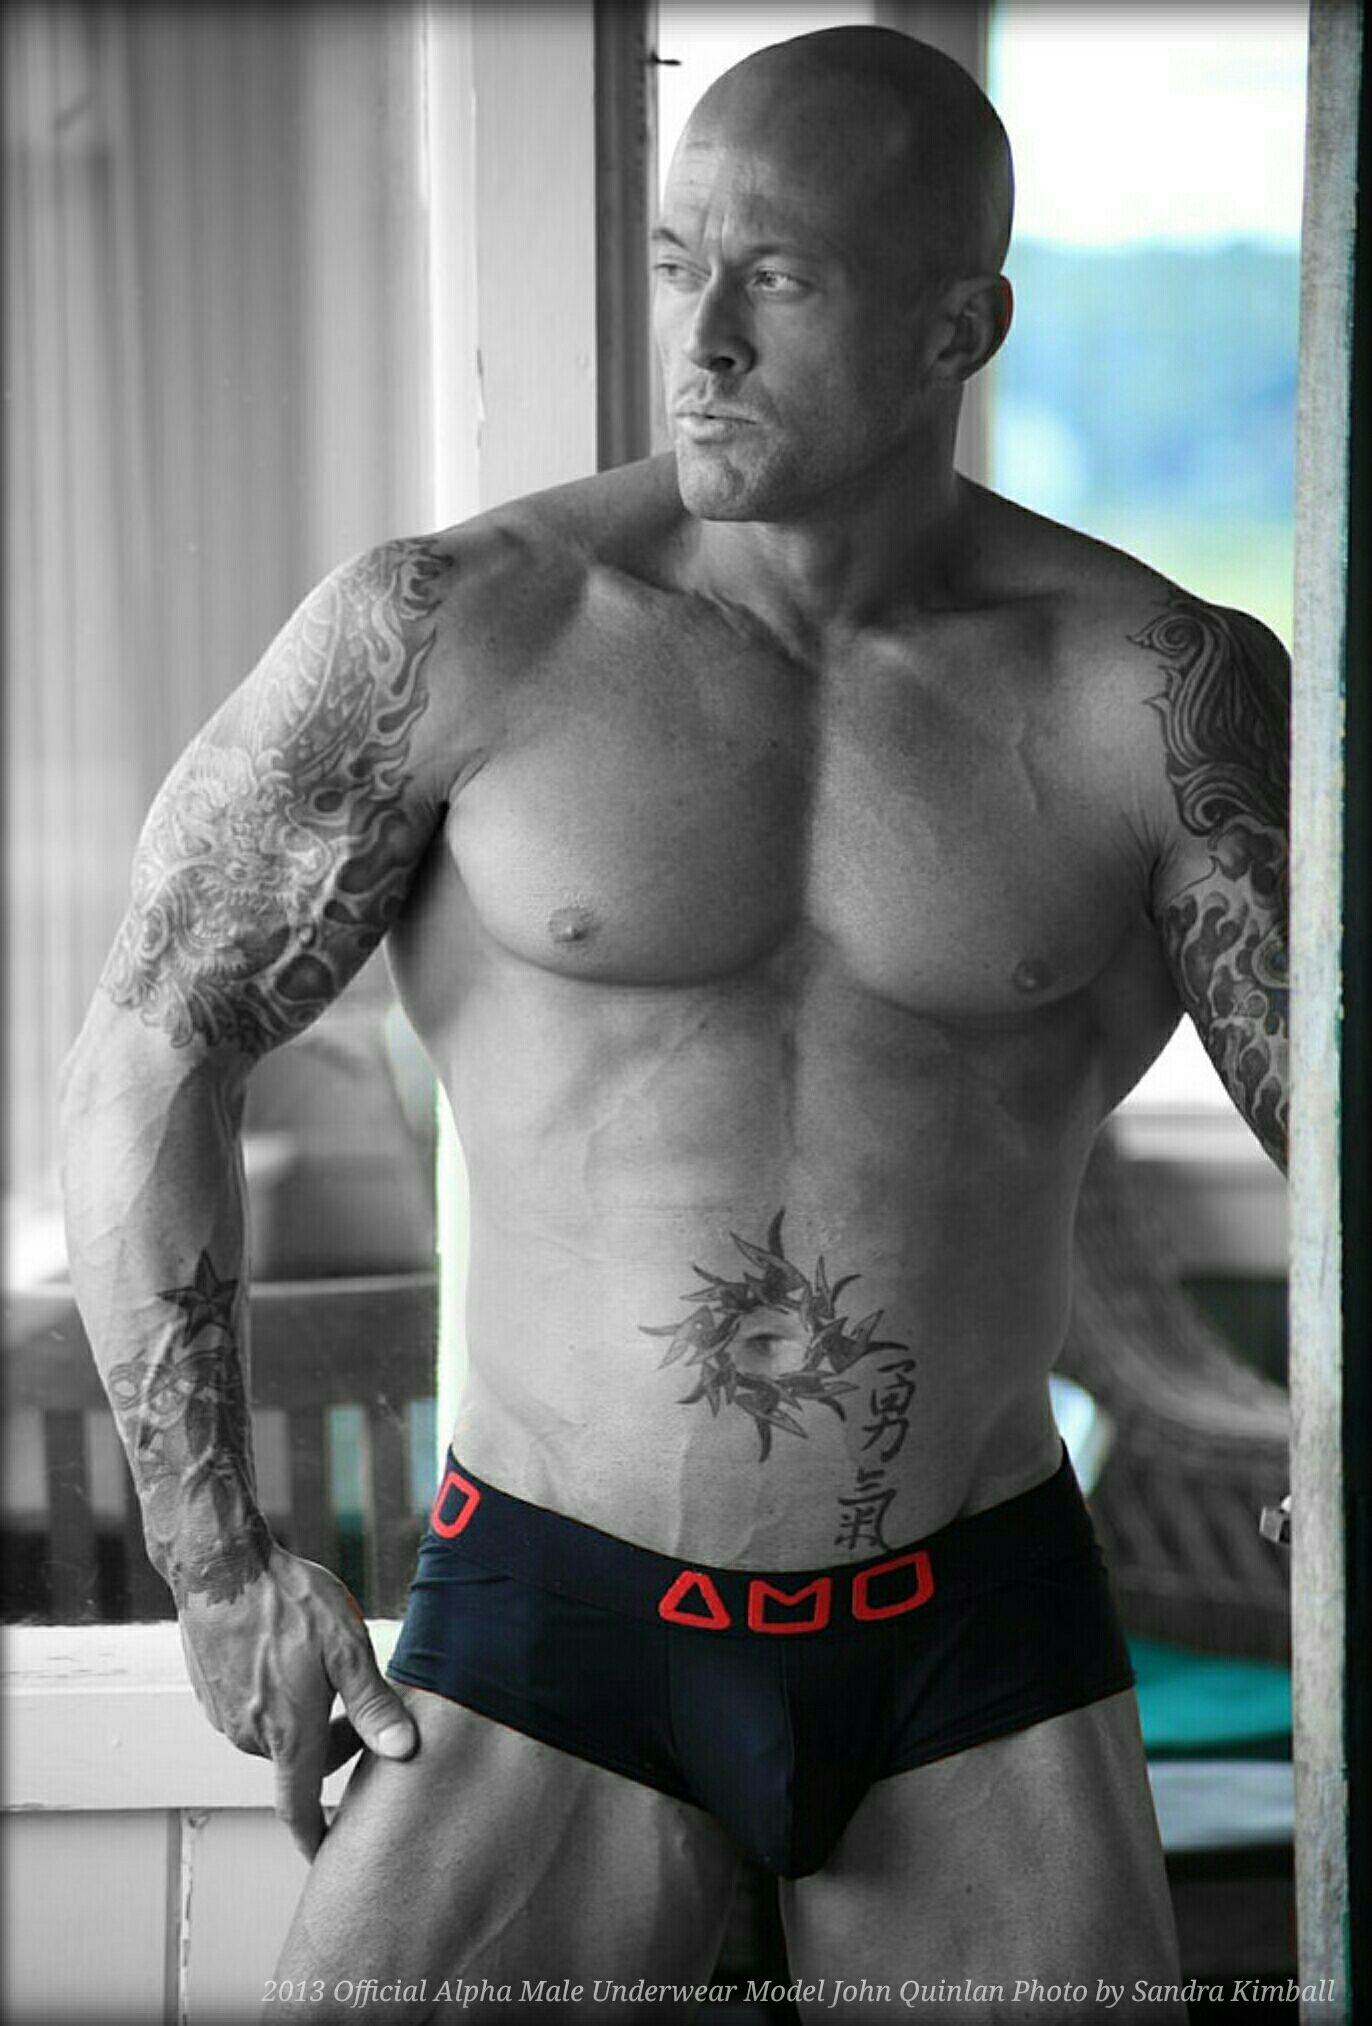 Romance Physique Underwear Model & Actor John Joseph Quinlan in Alpha Male #JohnQuinlan